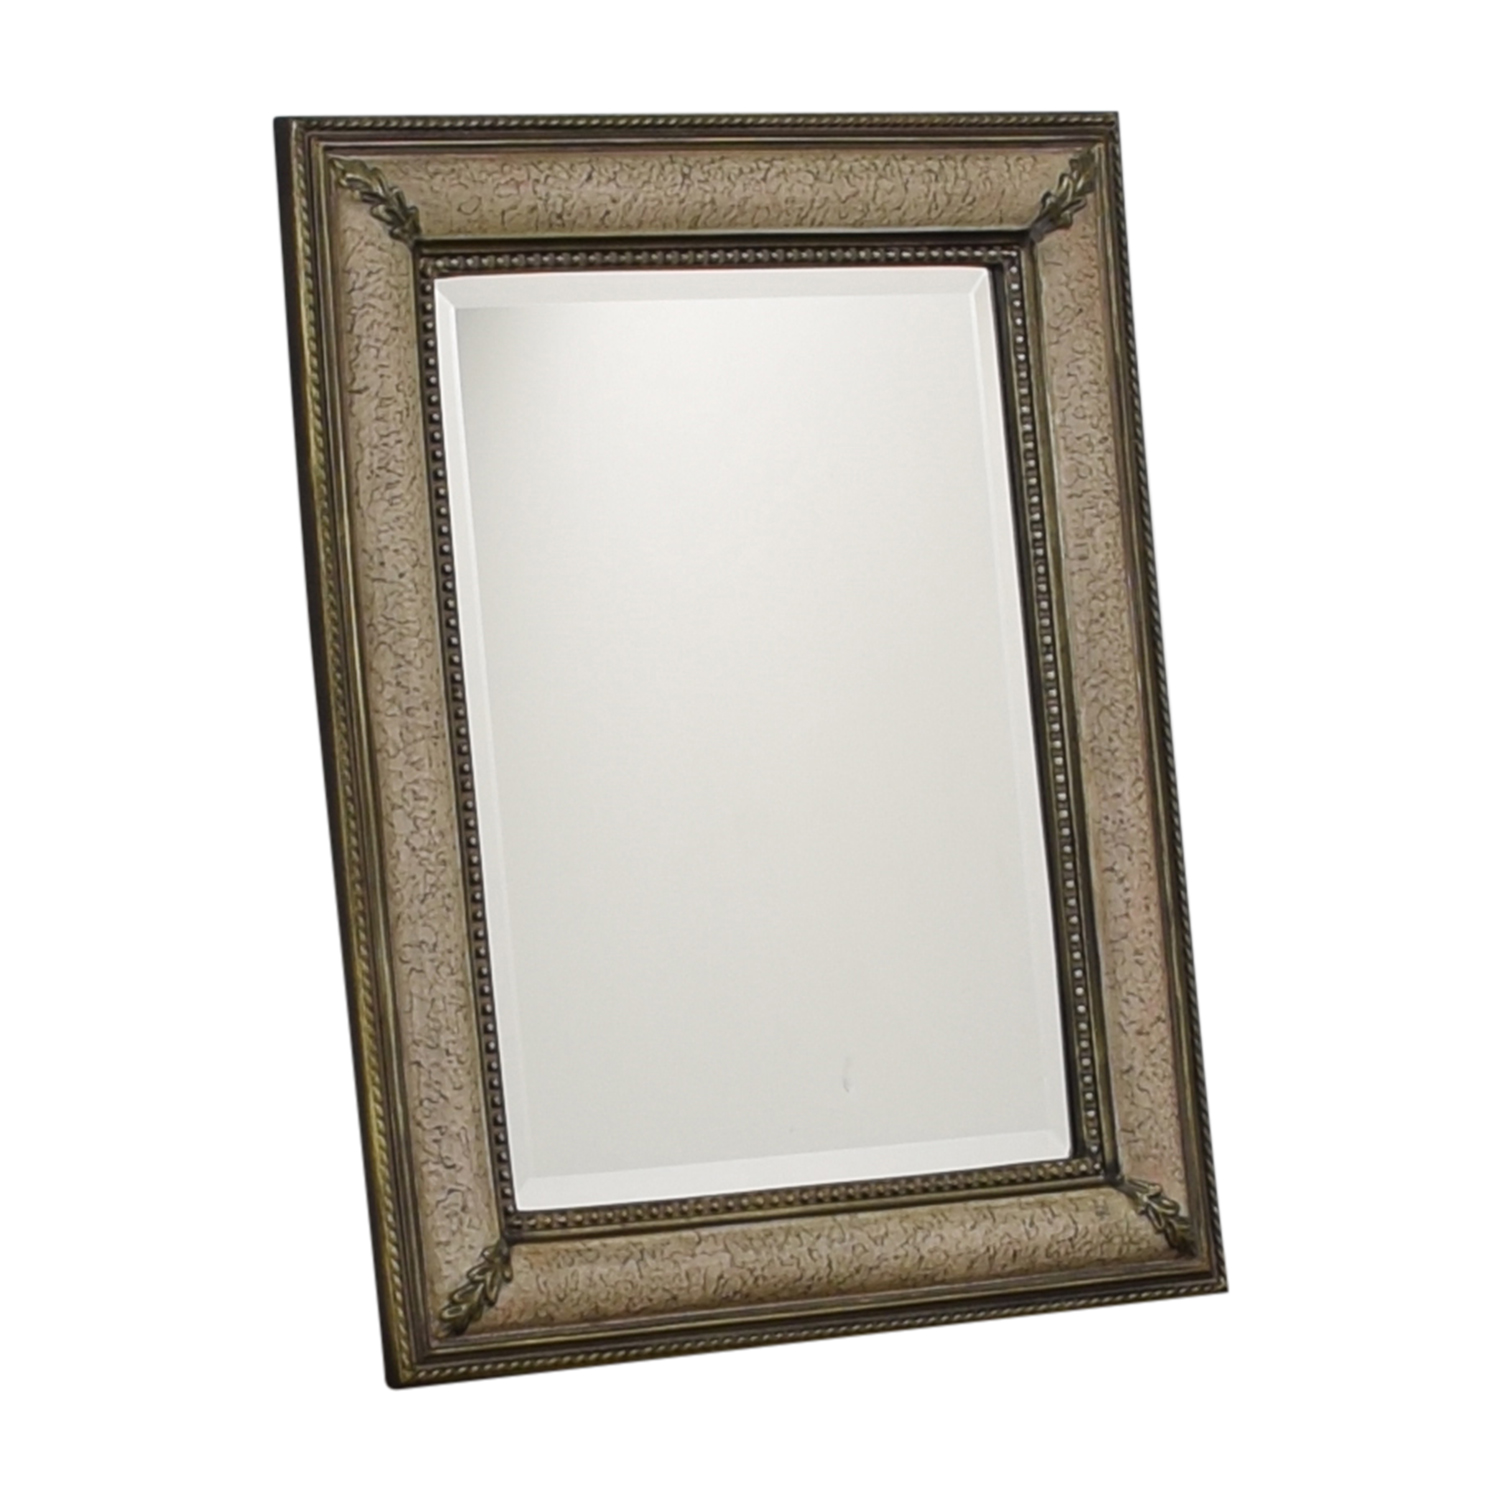 buy Uttermost Rustic Framed Mirror Uttermost Decor